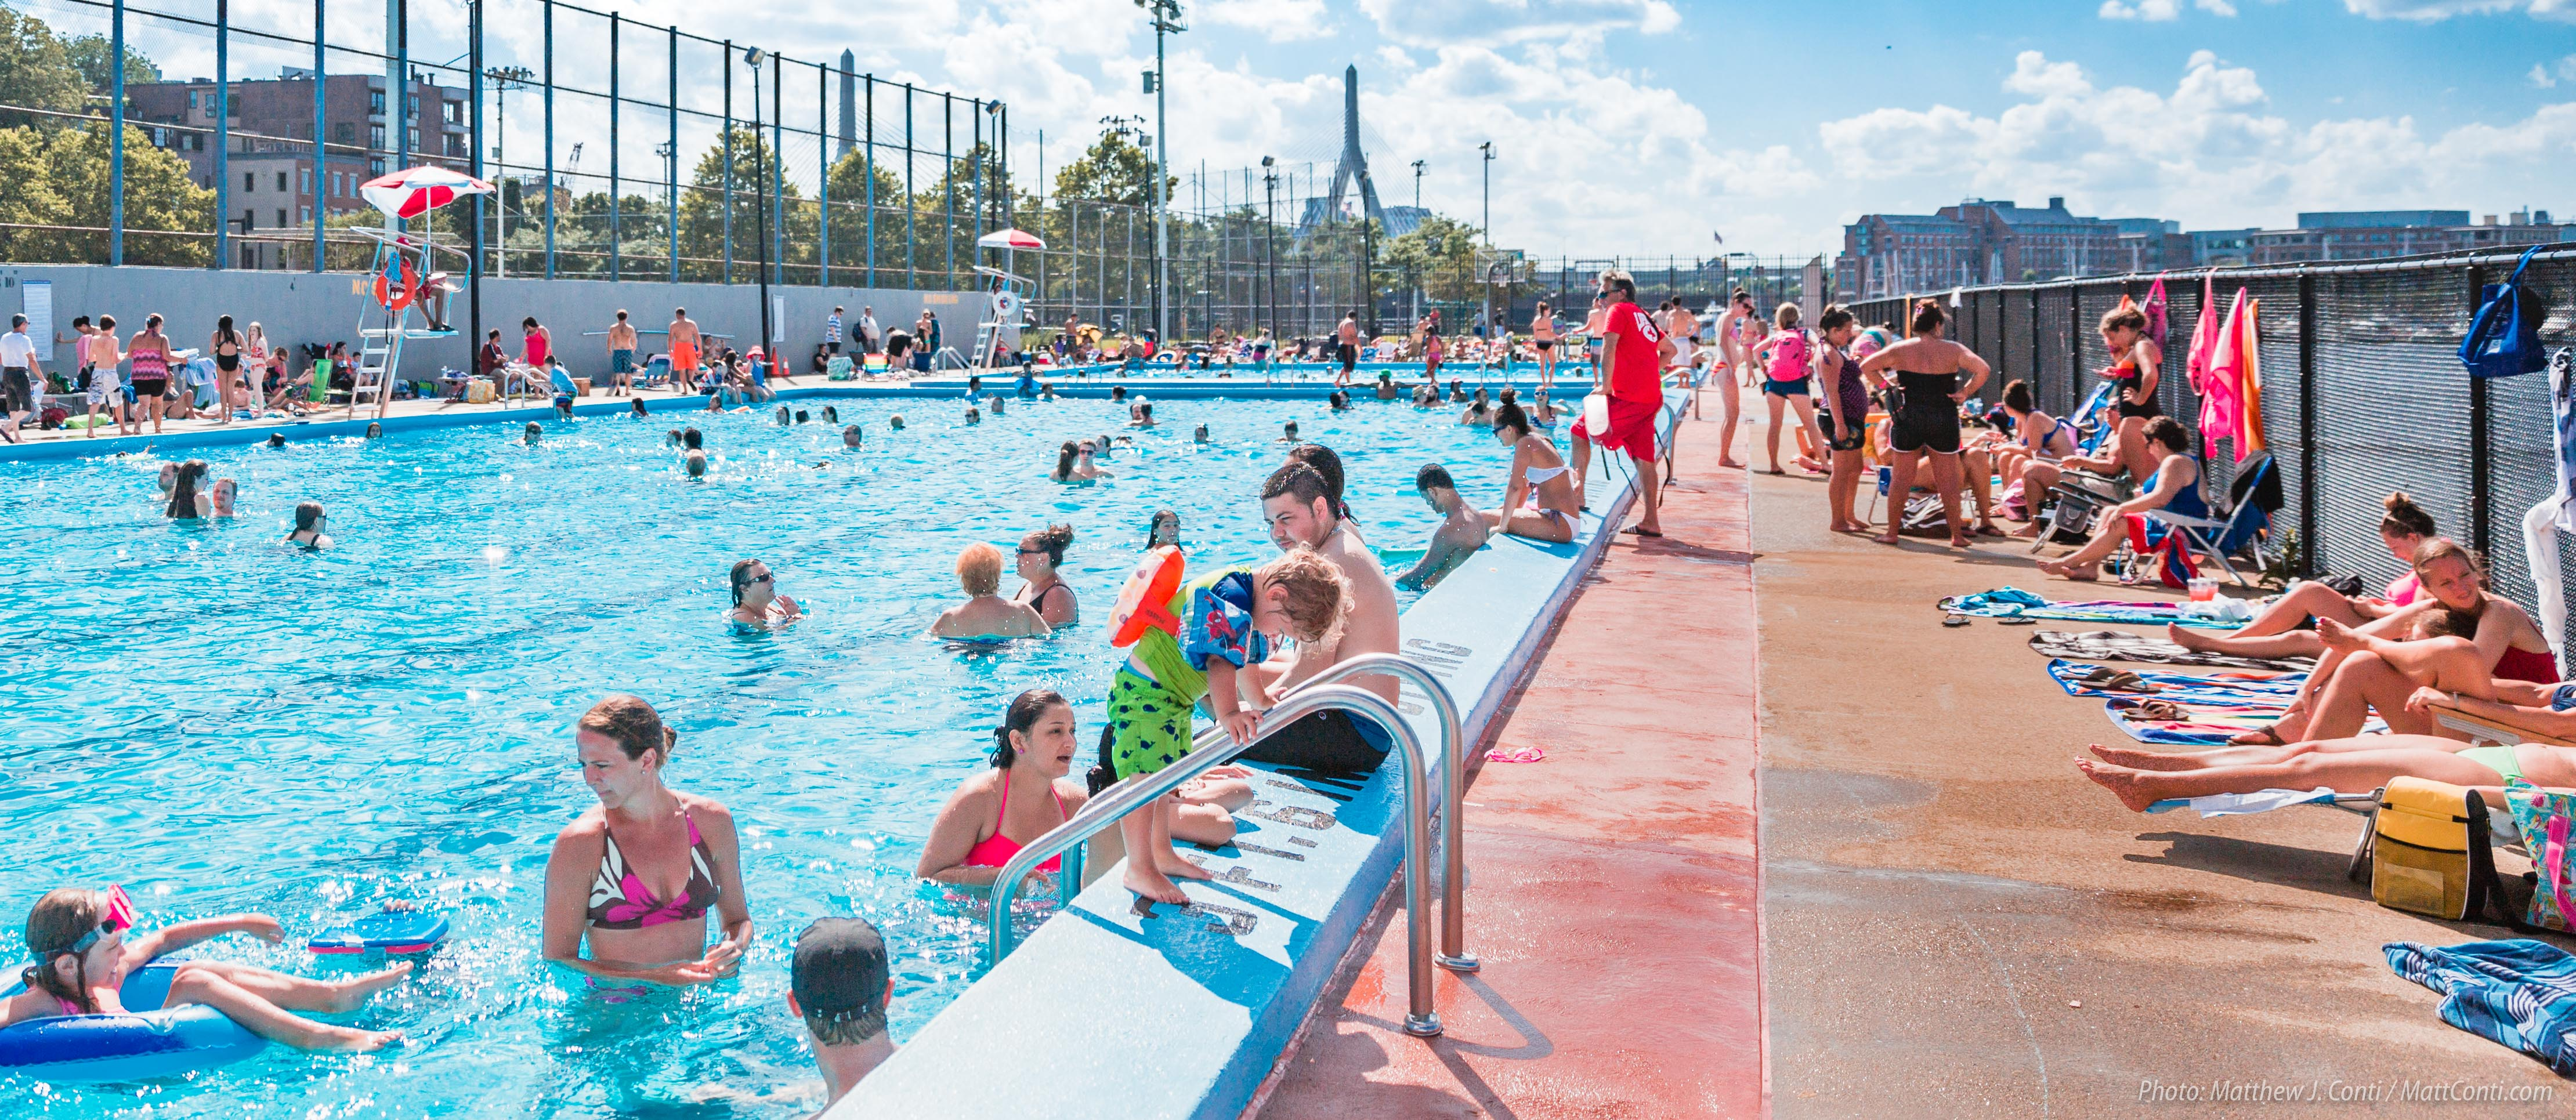 Cool Off With A Dip In A City Pool Bu Today Boston University